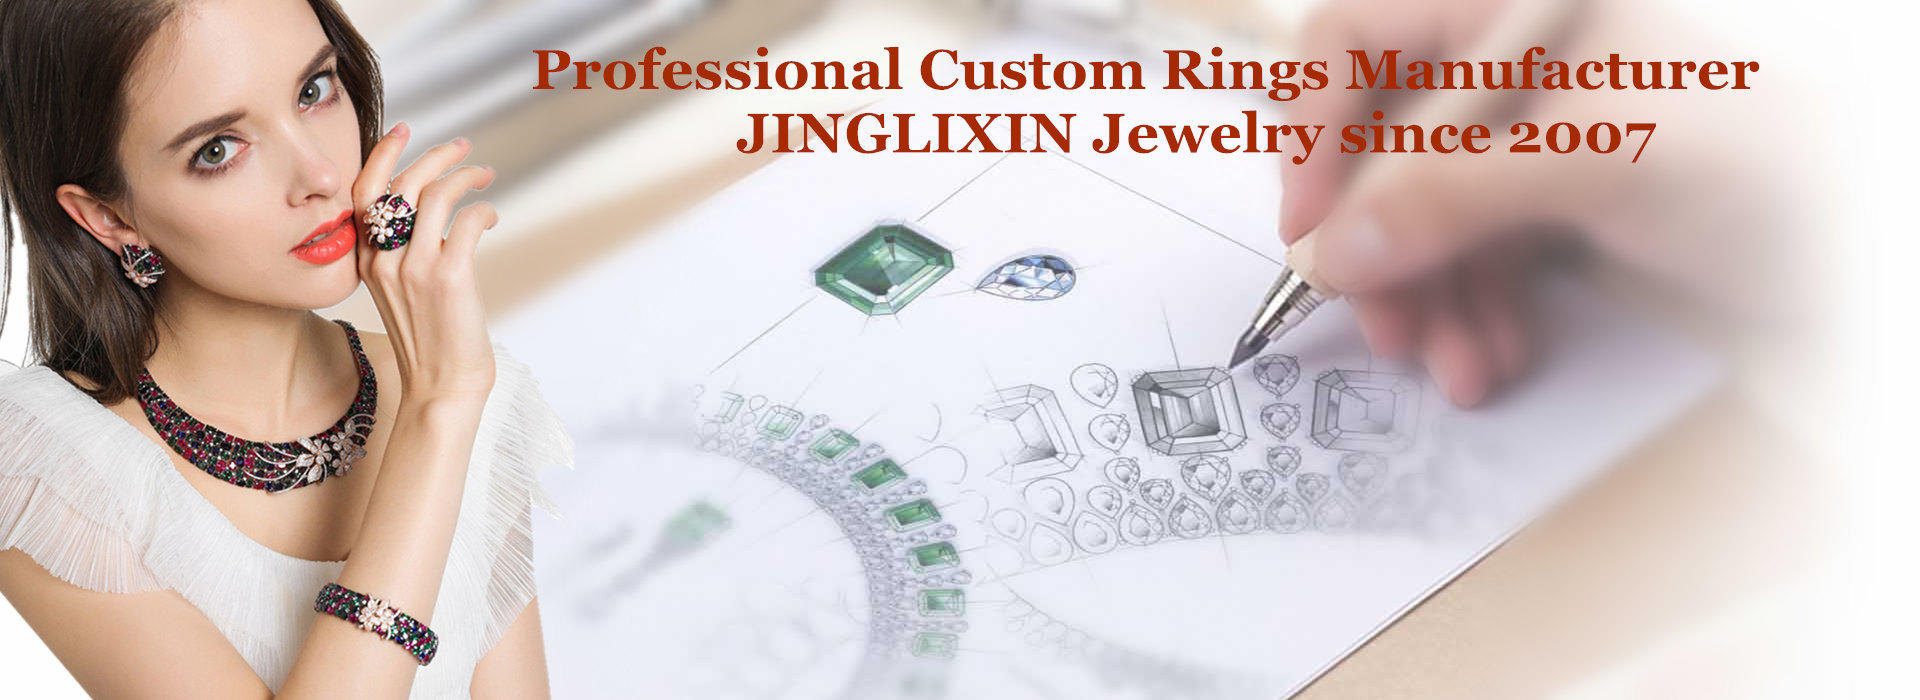 custom rings manufacturer, custom wedding rings supplier, custom made rings factory